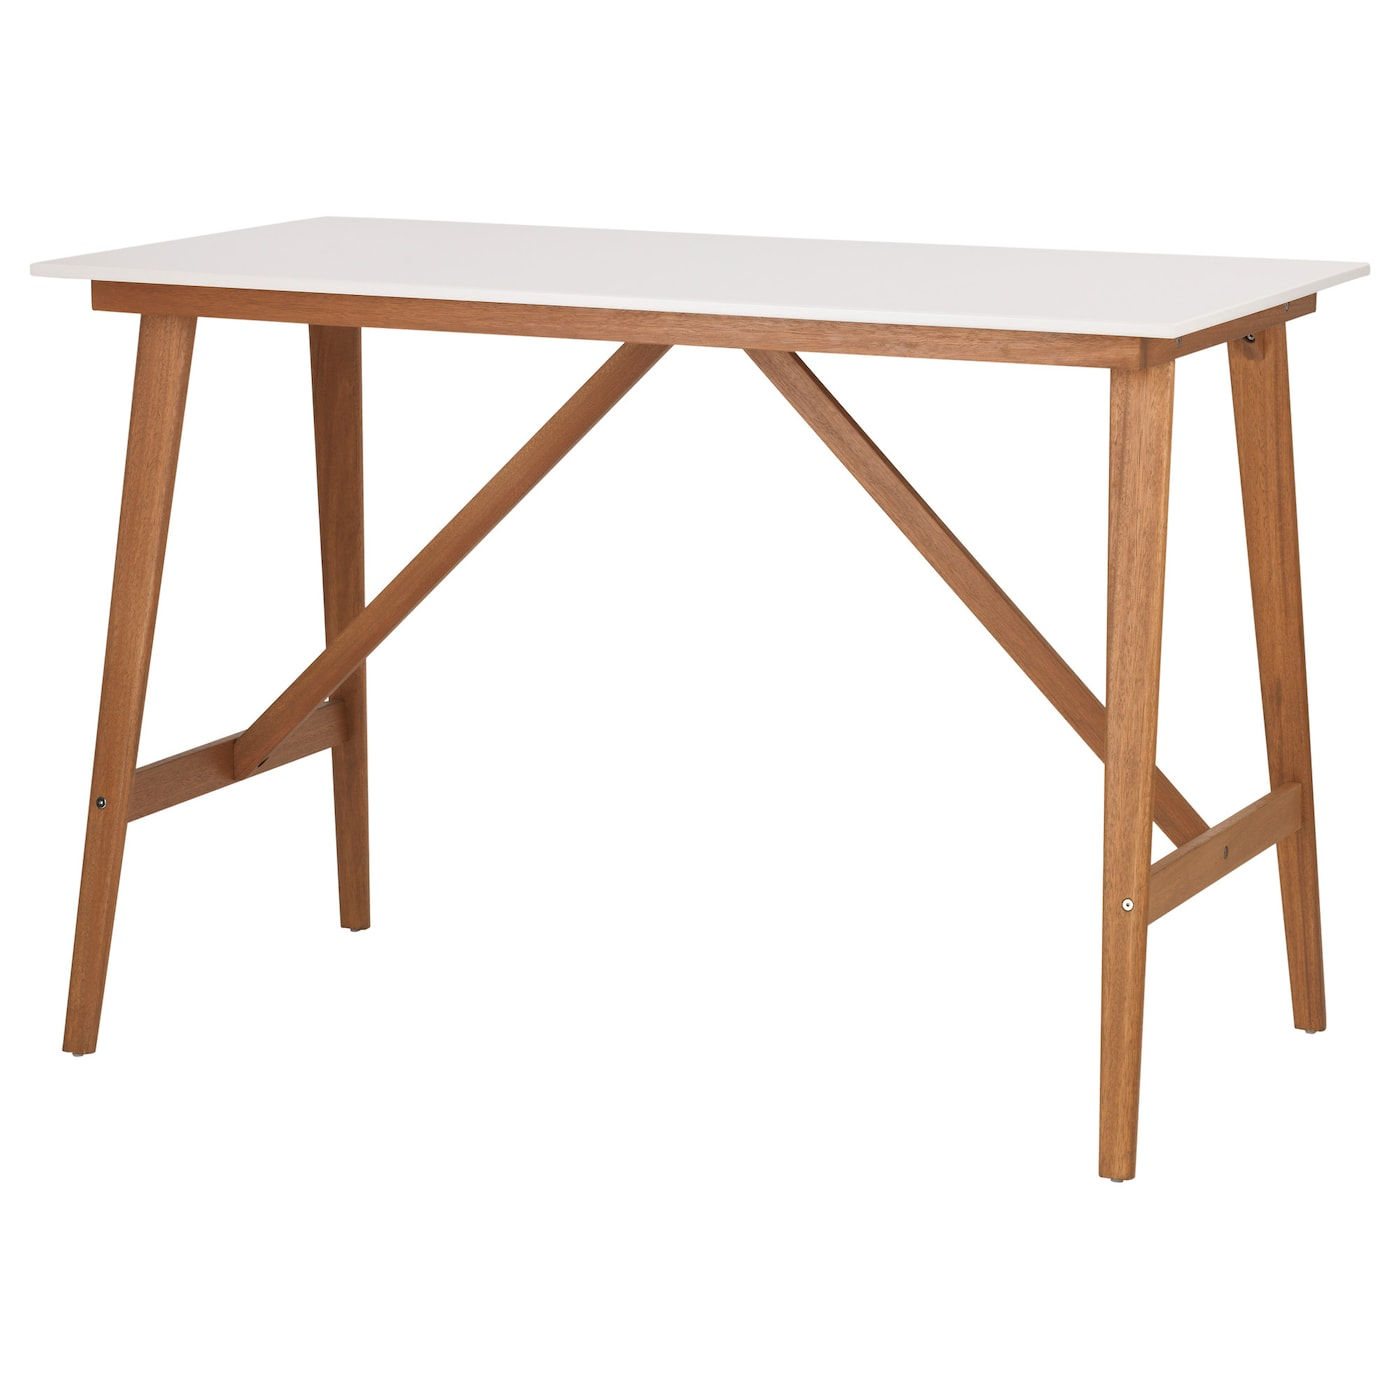 Fanbyn Bar Table White 140 X 78 X 95 Cm Ikea